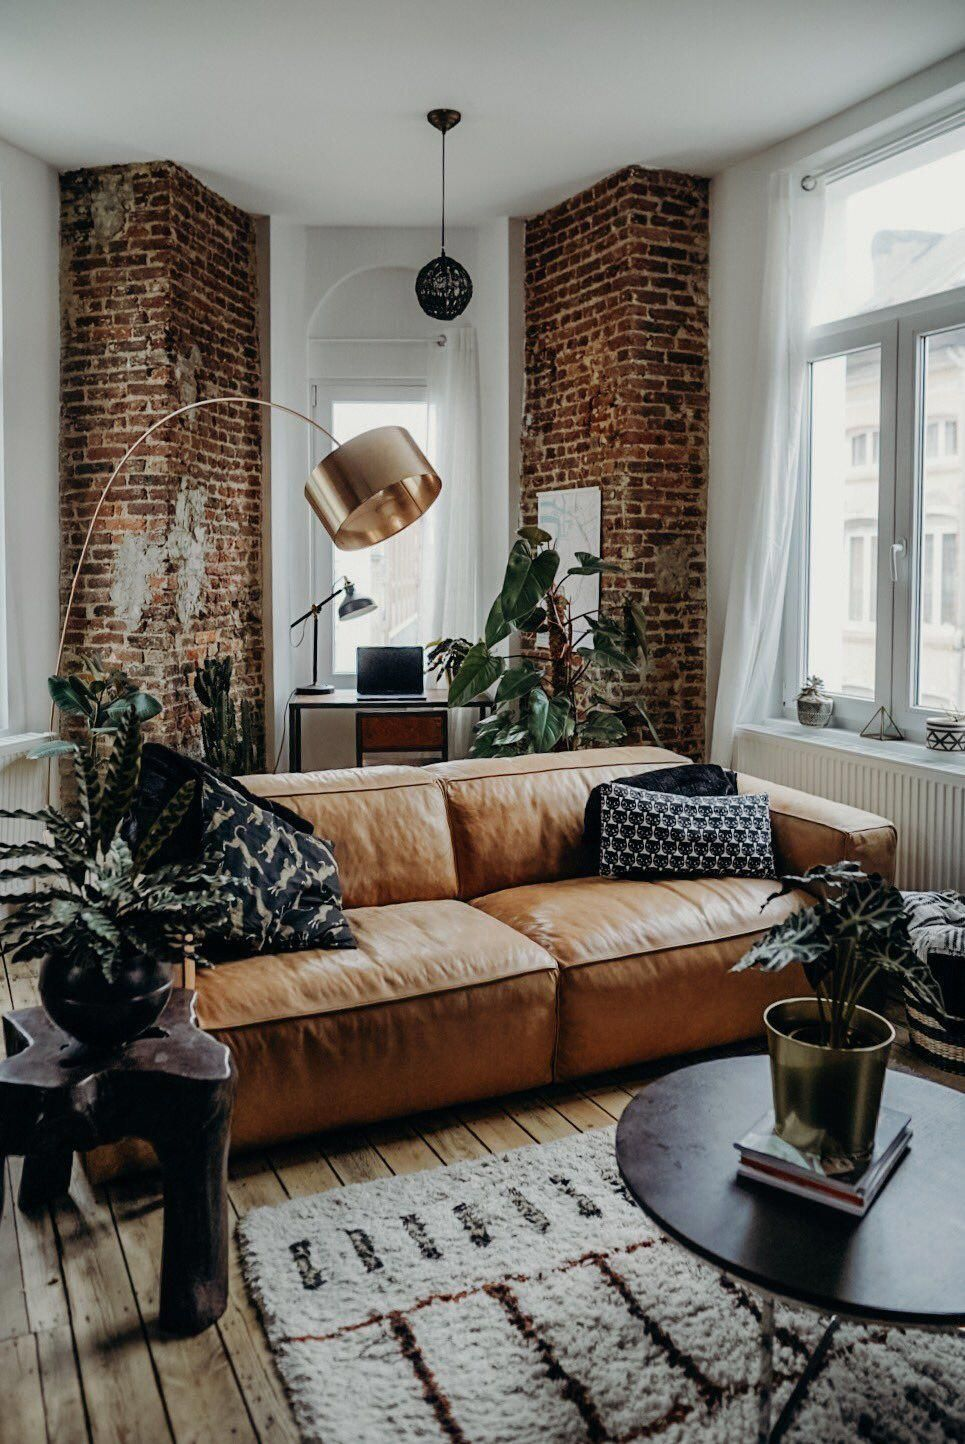 Moss Green Meaning And How To Match The Color In The Decoration In 2020 Simple Bedroom Decor Rustic Living Room Home Decor Bedroom